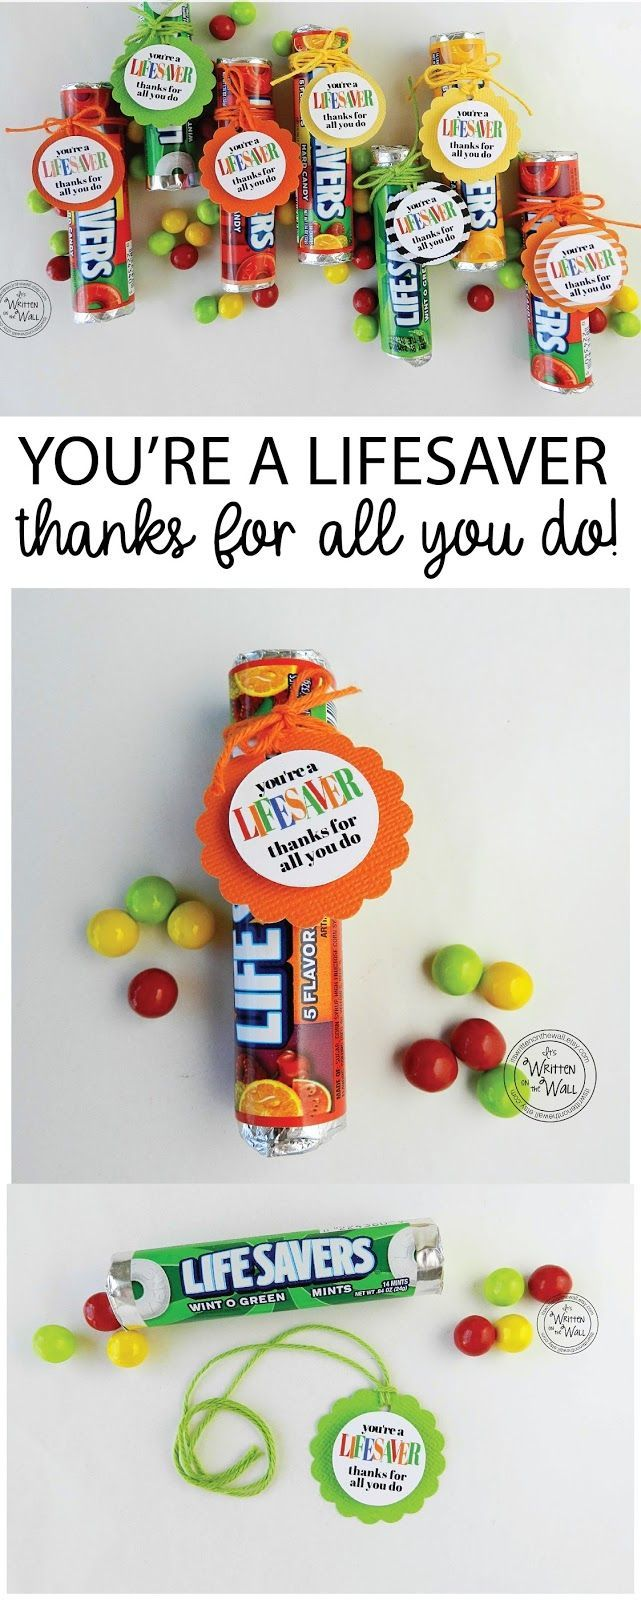 Employee Appreciation Quotes You're A Lifesaverthanks For All You Do Fun Appreciation Treat